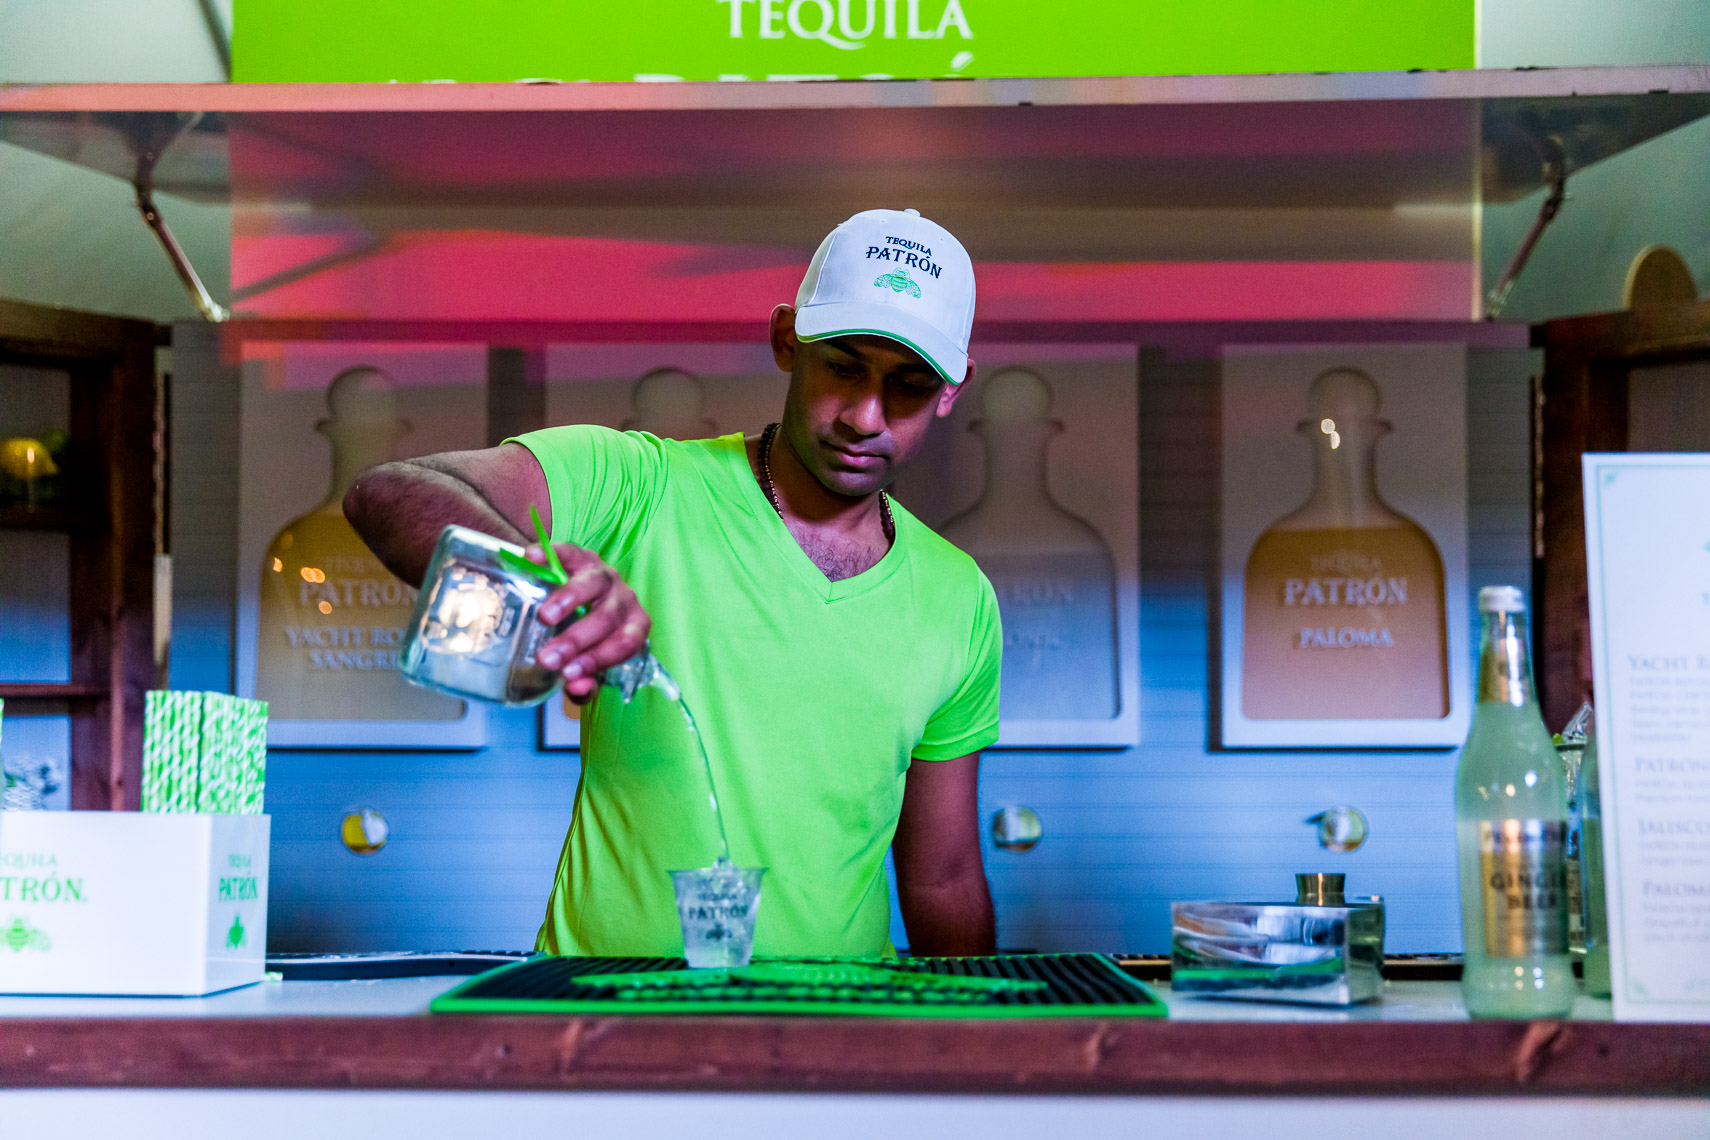 Patron Tequilla sponsor tent at an outdoor event in Jacksonville